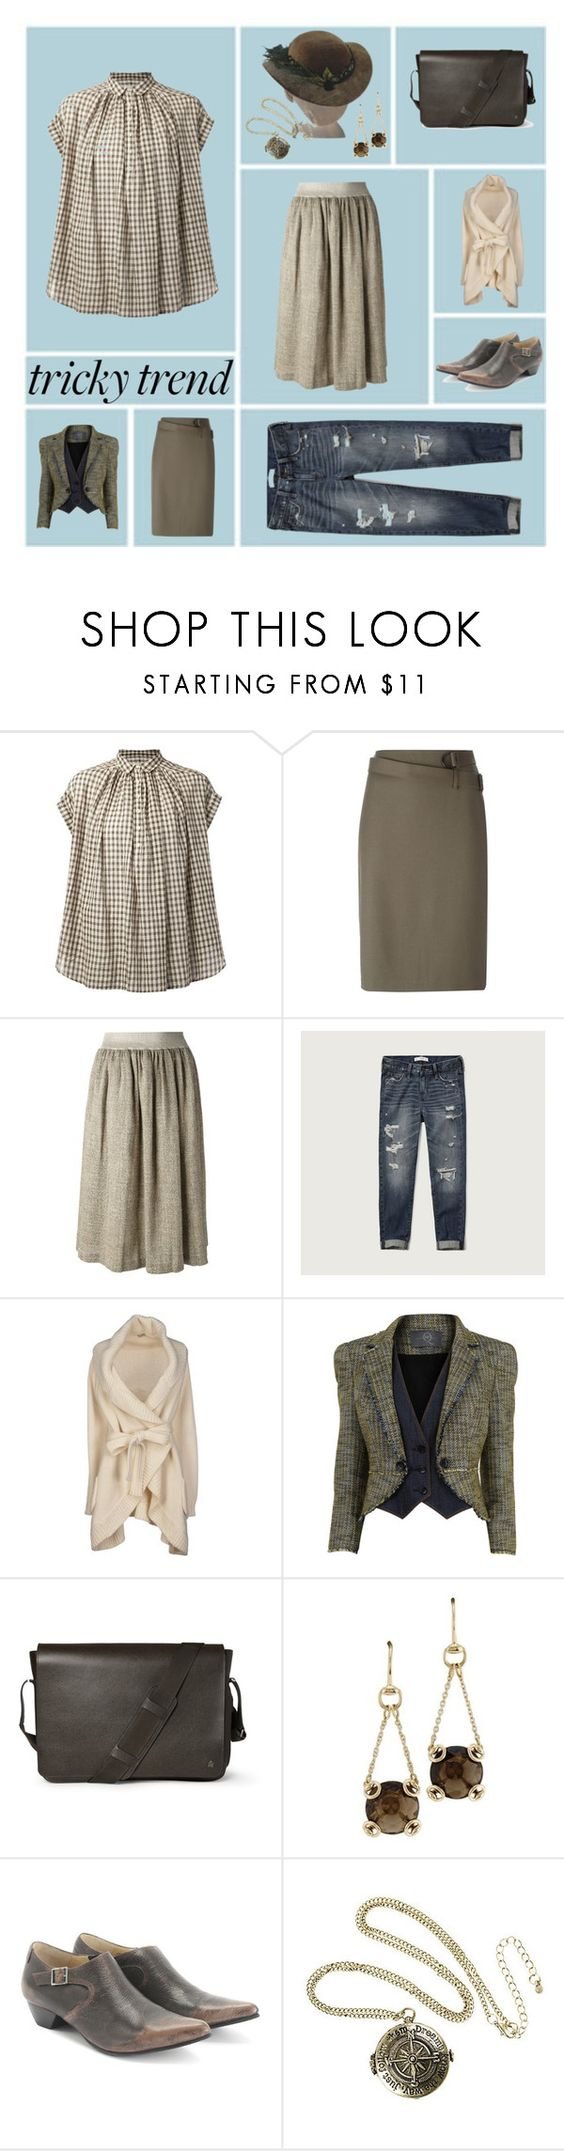 """""""Touch of Vintage"""" by rewolf71 ❤ liked on Polyvore featuring Nili Lotan, 3.1 Phillip Lim, Forte Forte, Abercrombie & Fitch, Le Ragazze Di St. Barth, McQ by Alexander McQueen, Dunhill, Gucci, John Fluevog and EASEL"""